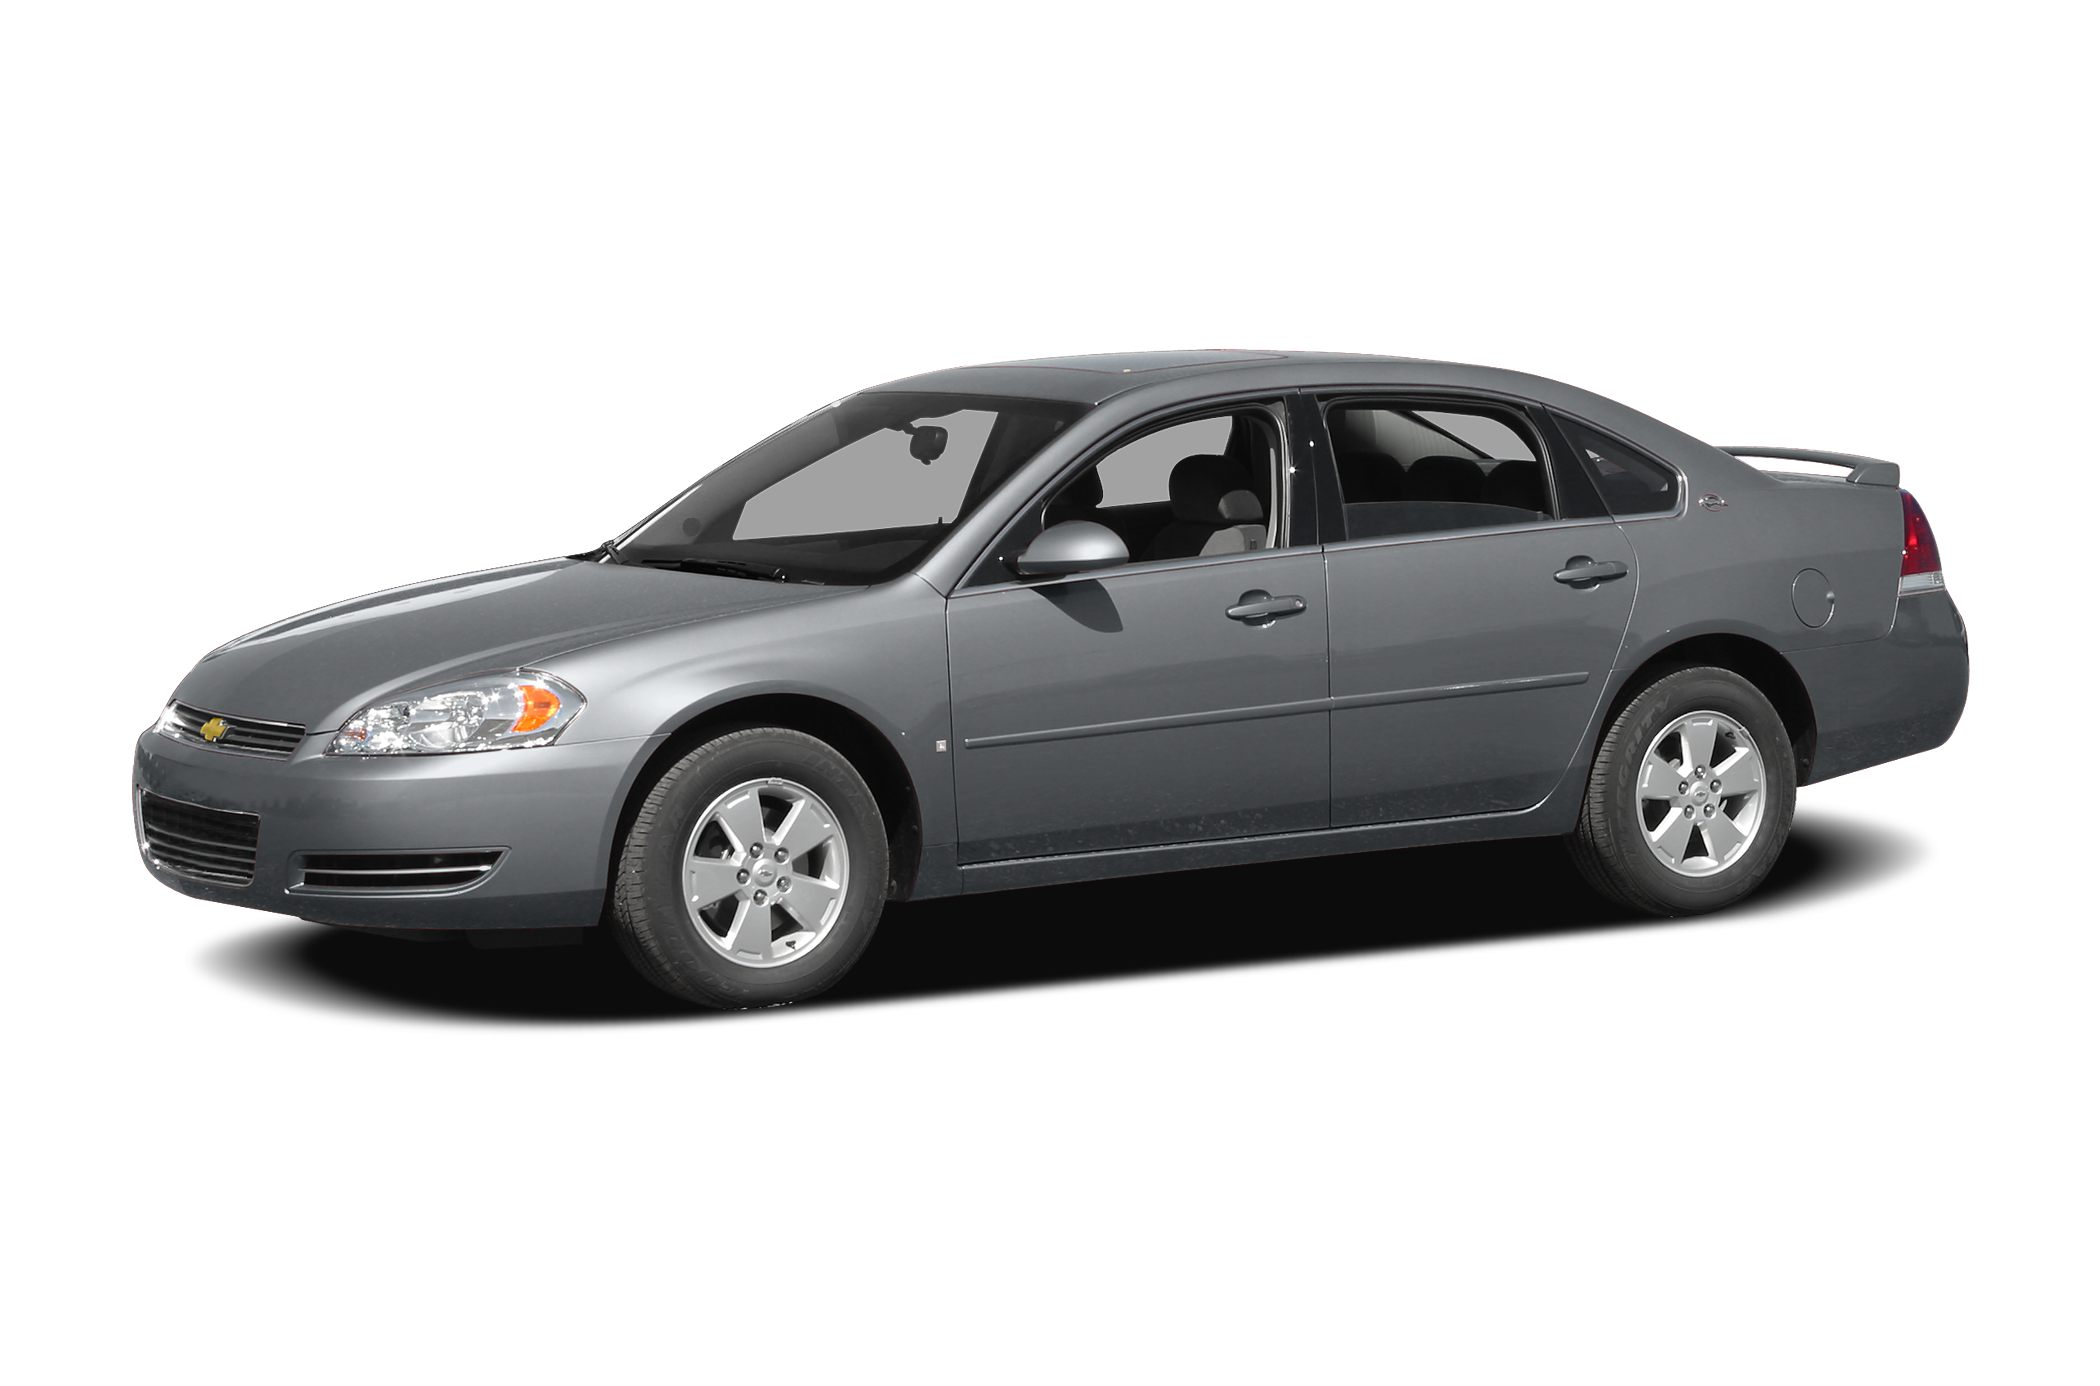 2008 Chevrolet Impala LT Sedan for sale in Hickory for $0 with 126,989 miles